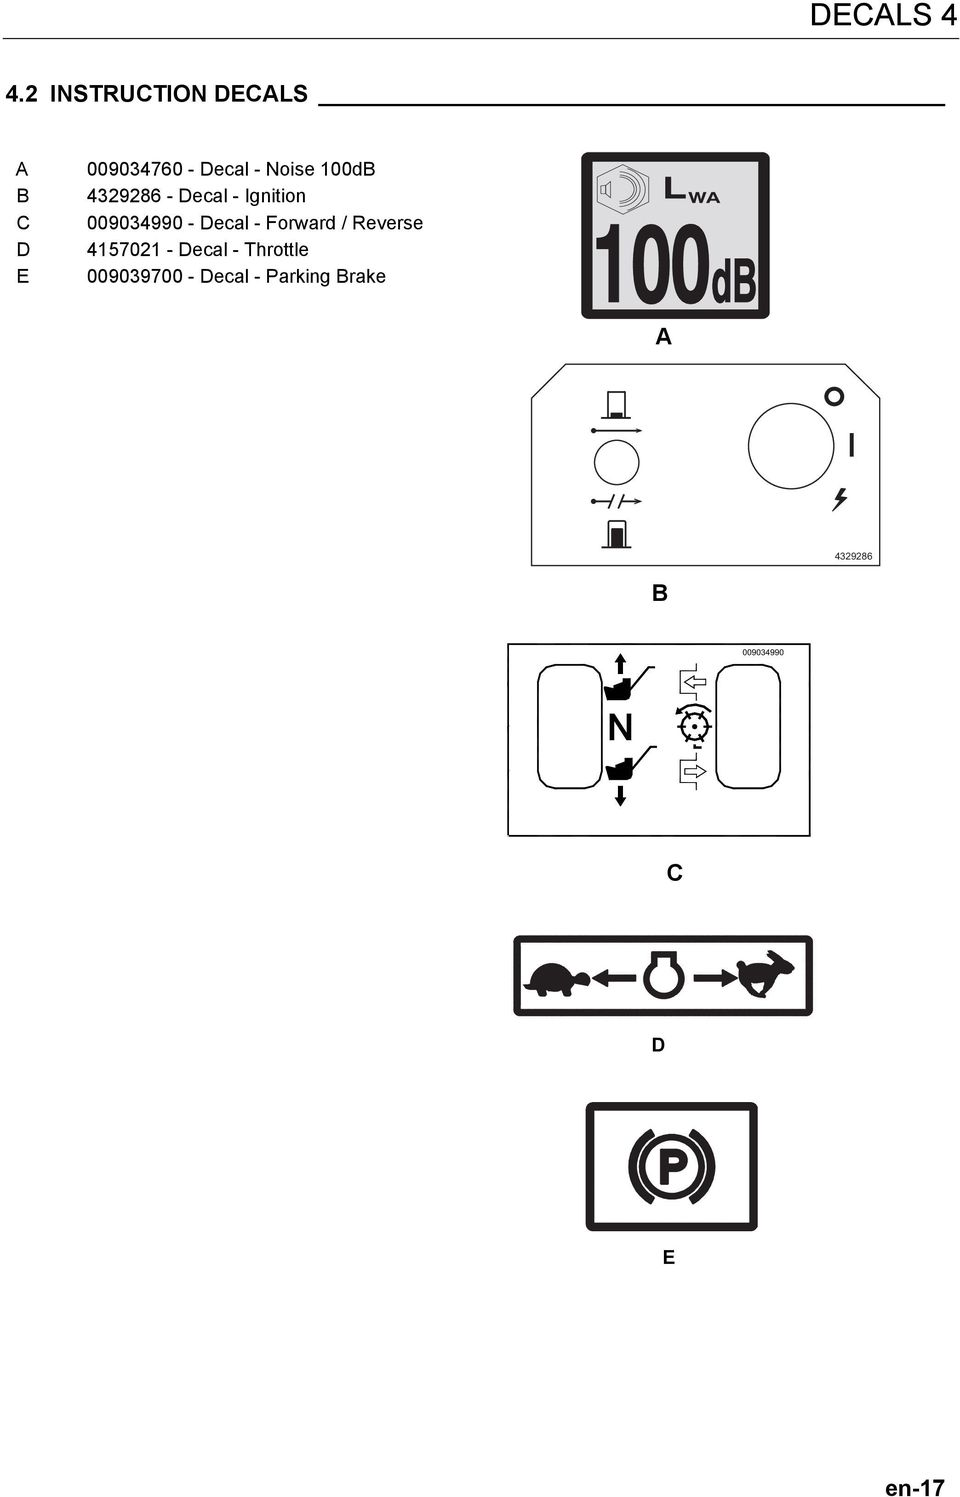 100dB 4329286 - Decal - Ignition 009034990 - Decal -